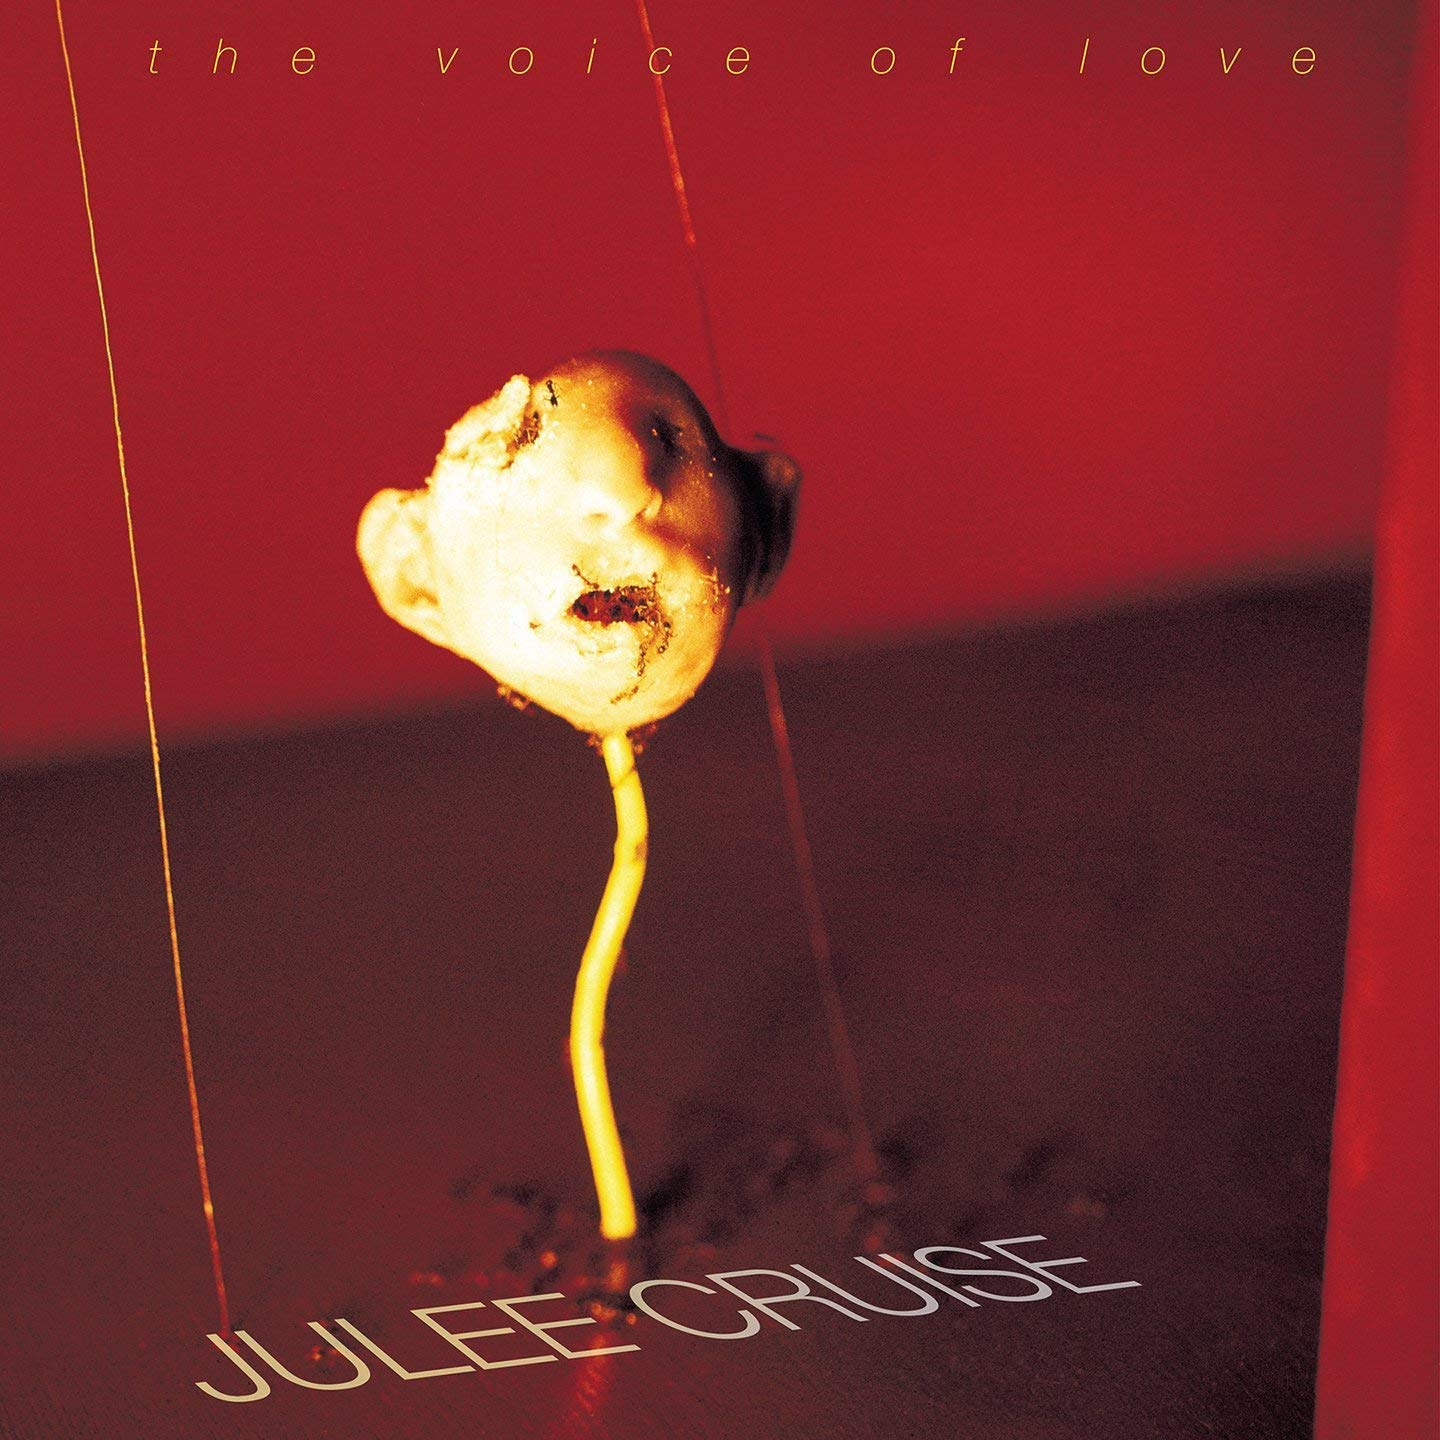 Julee Cruise - The Voice Of Love [LP]